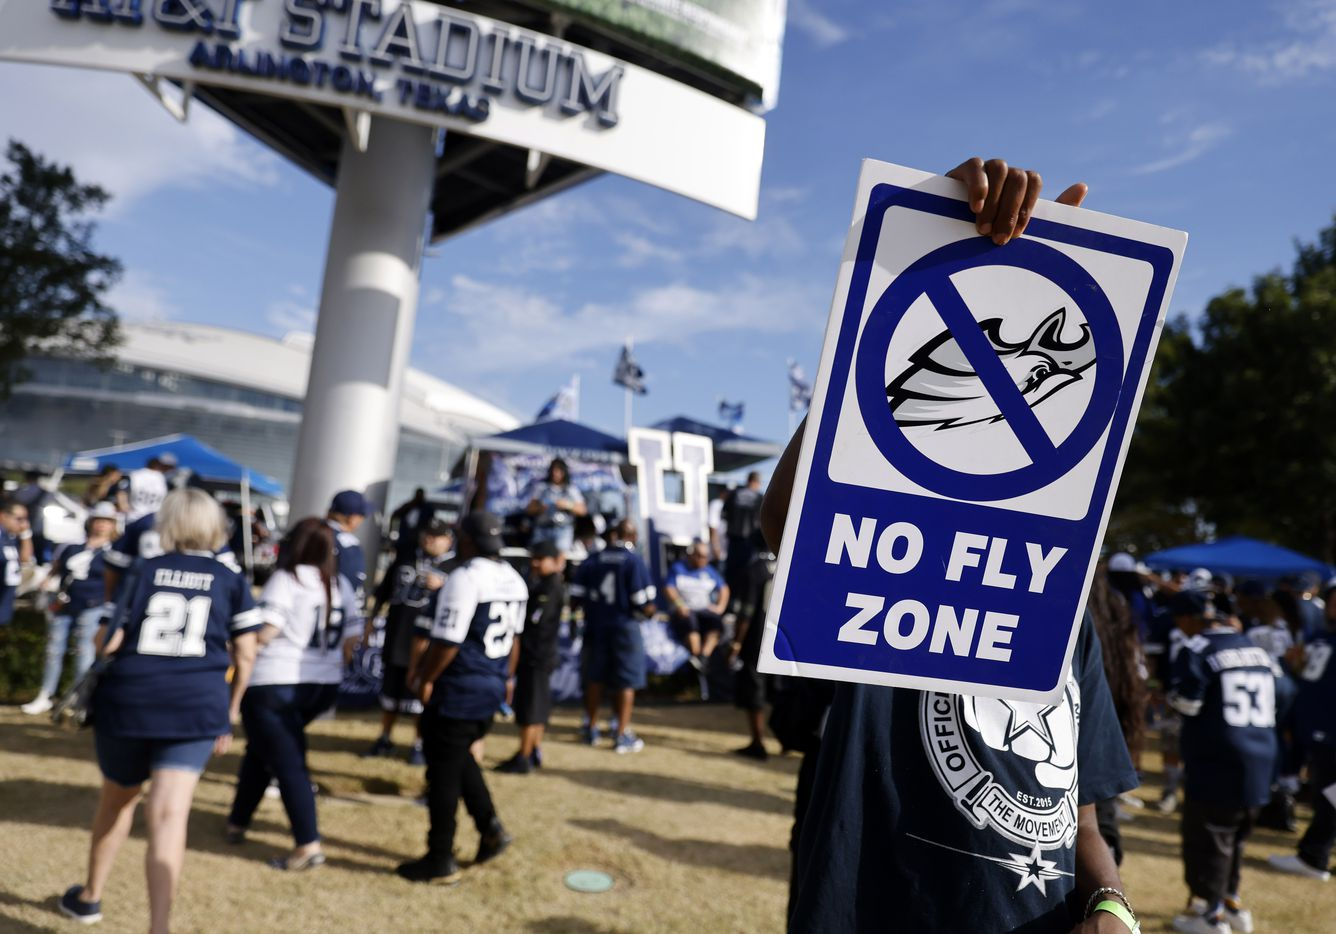 A Dallas Cowboys fan spreads the word about the Philadelphia Eagles before the Monday Night Football game at AT&T Stadium in Arlington, Monday, September 27, 2021. (Tom Fox/The Dallas Morning News)